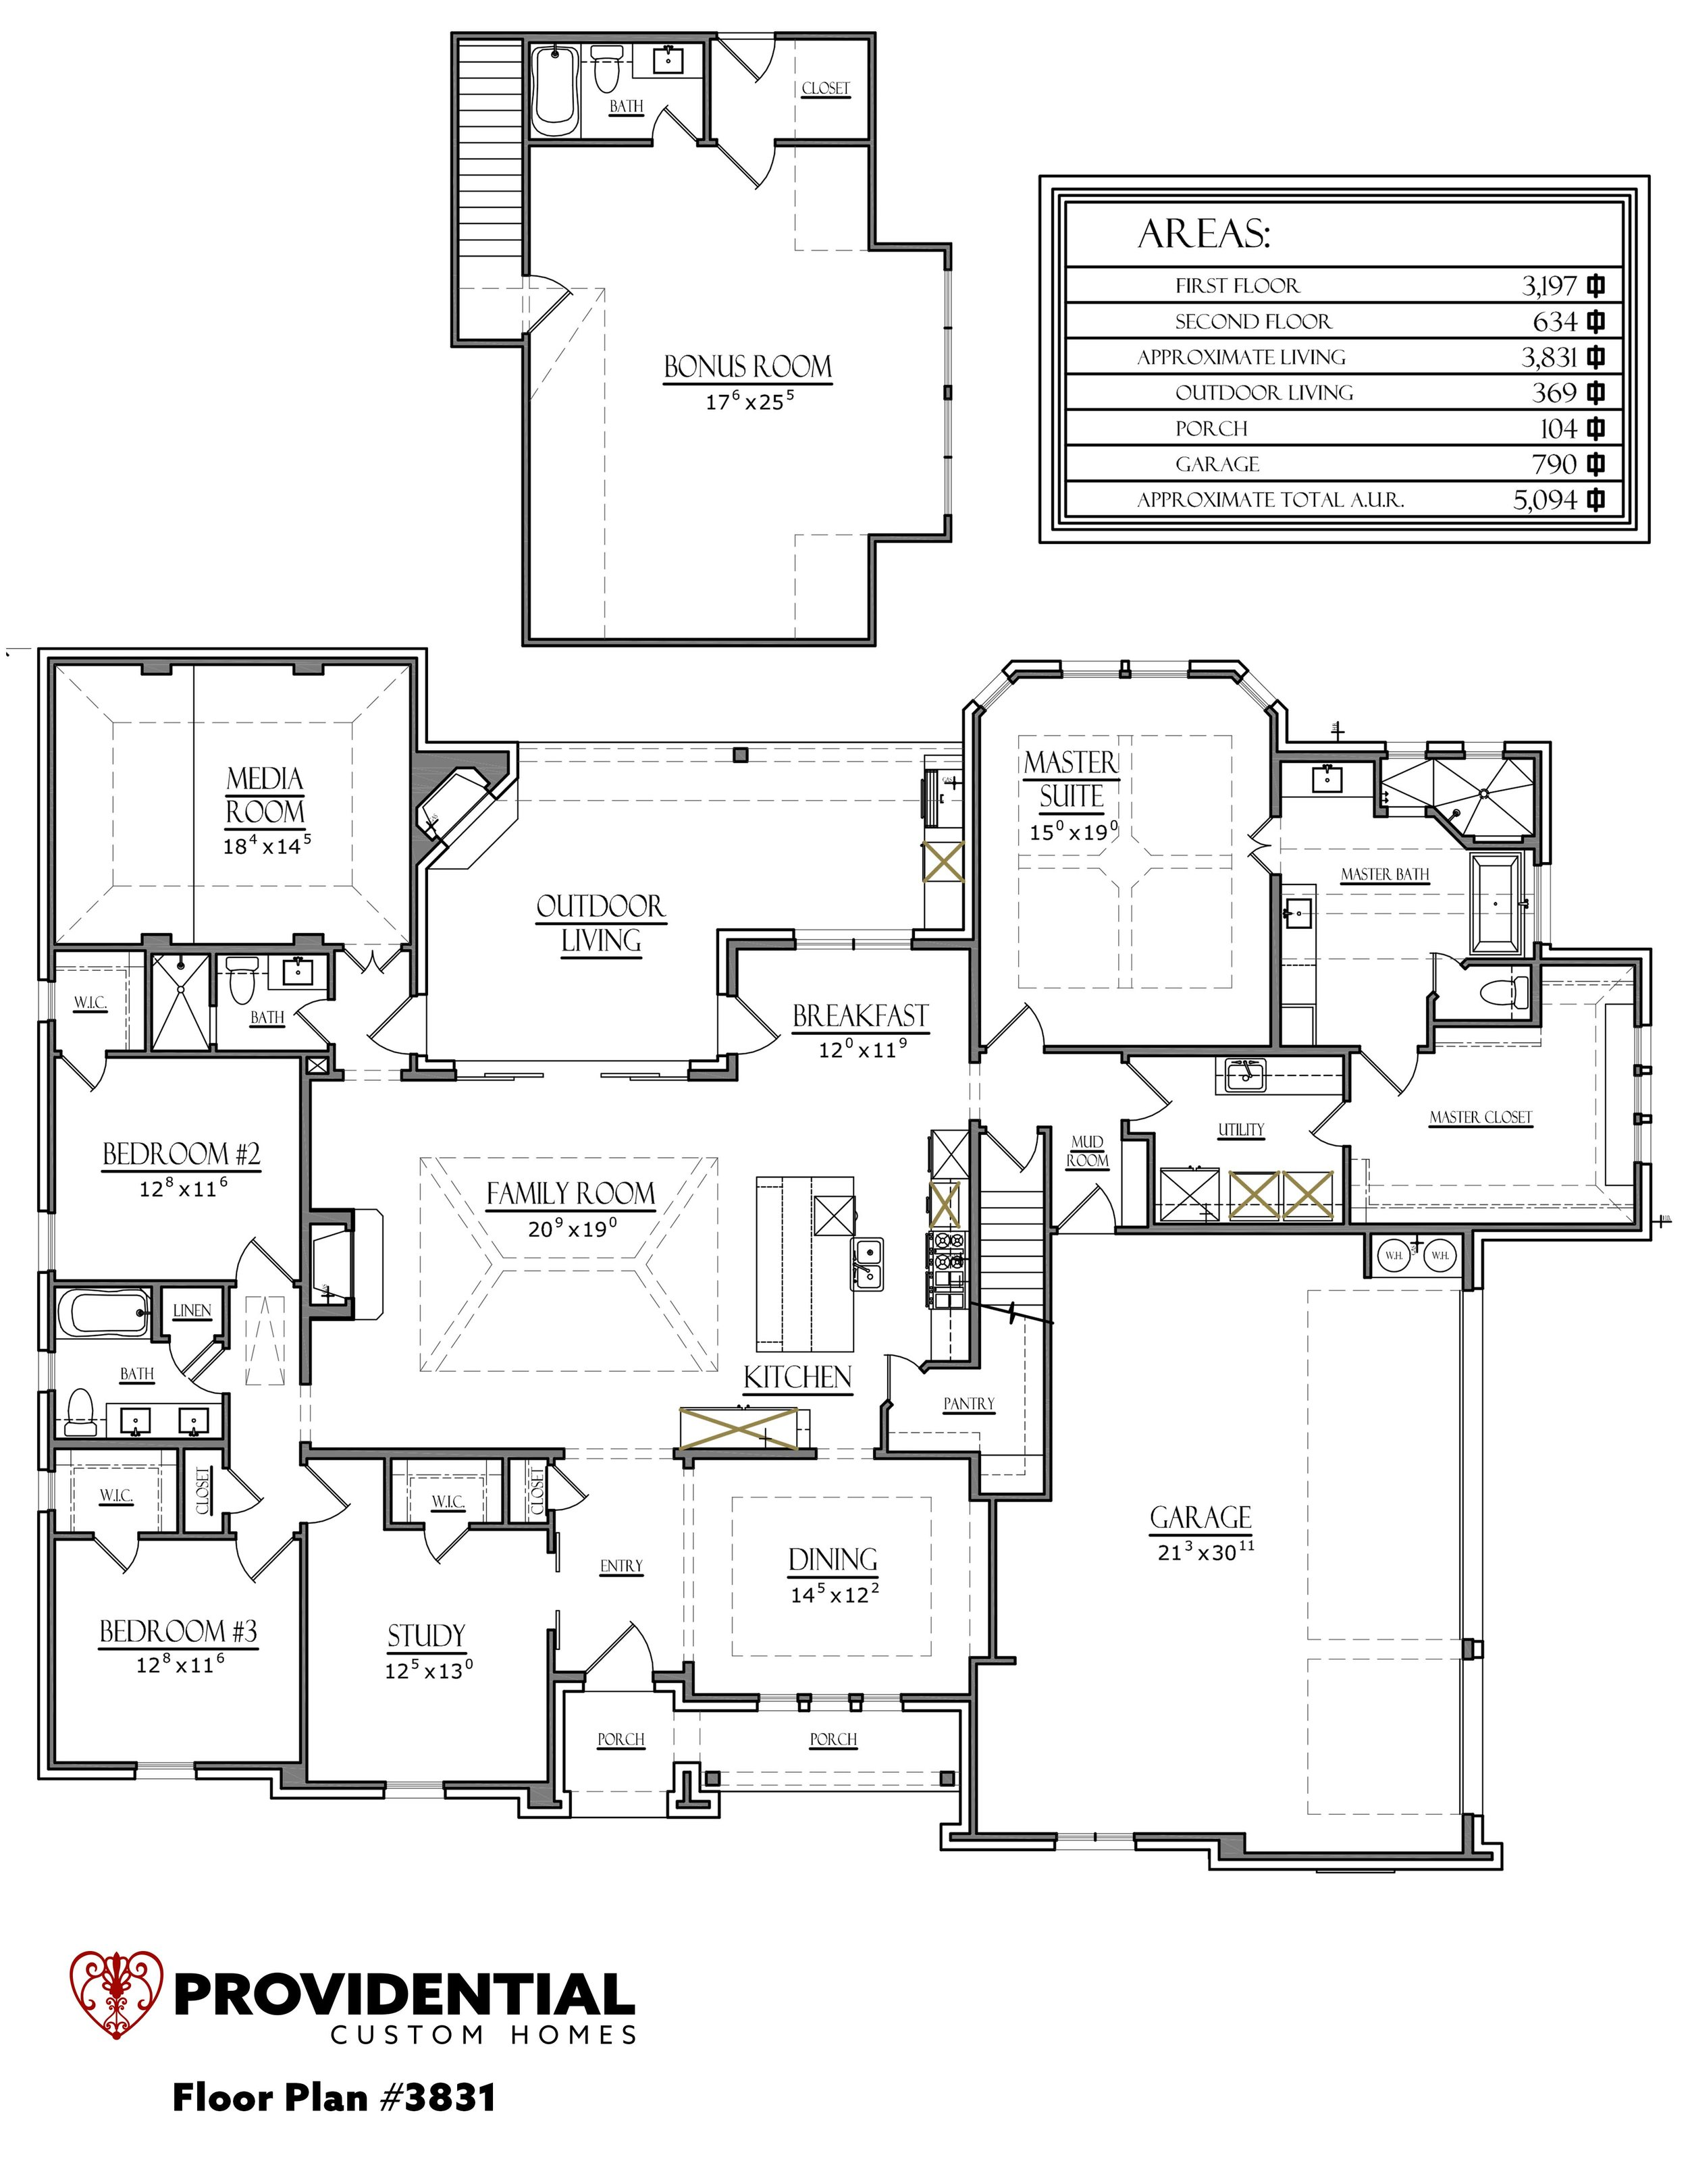 The FLOOR PLAN #3831.jpg